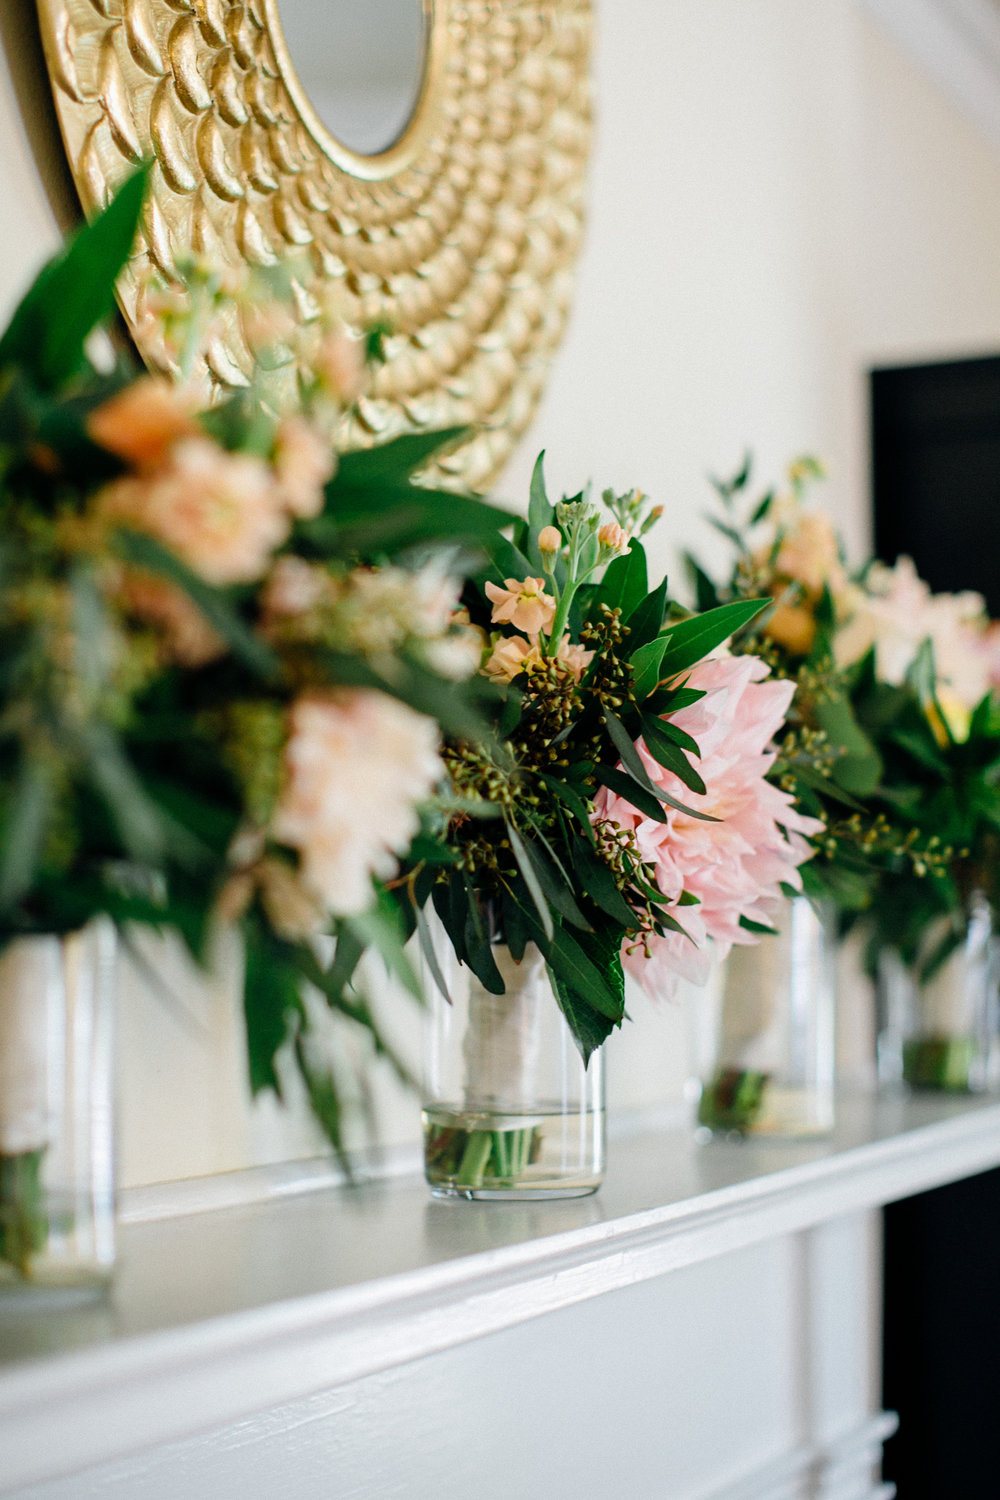 ccb9a-elegant-country-charm-ranch-wedding-bridal-bouquets-displayed-on-mantle.jpg